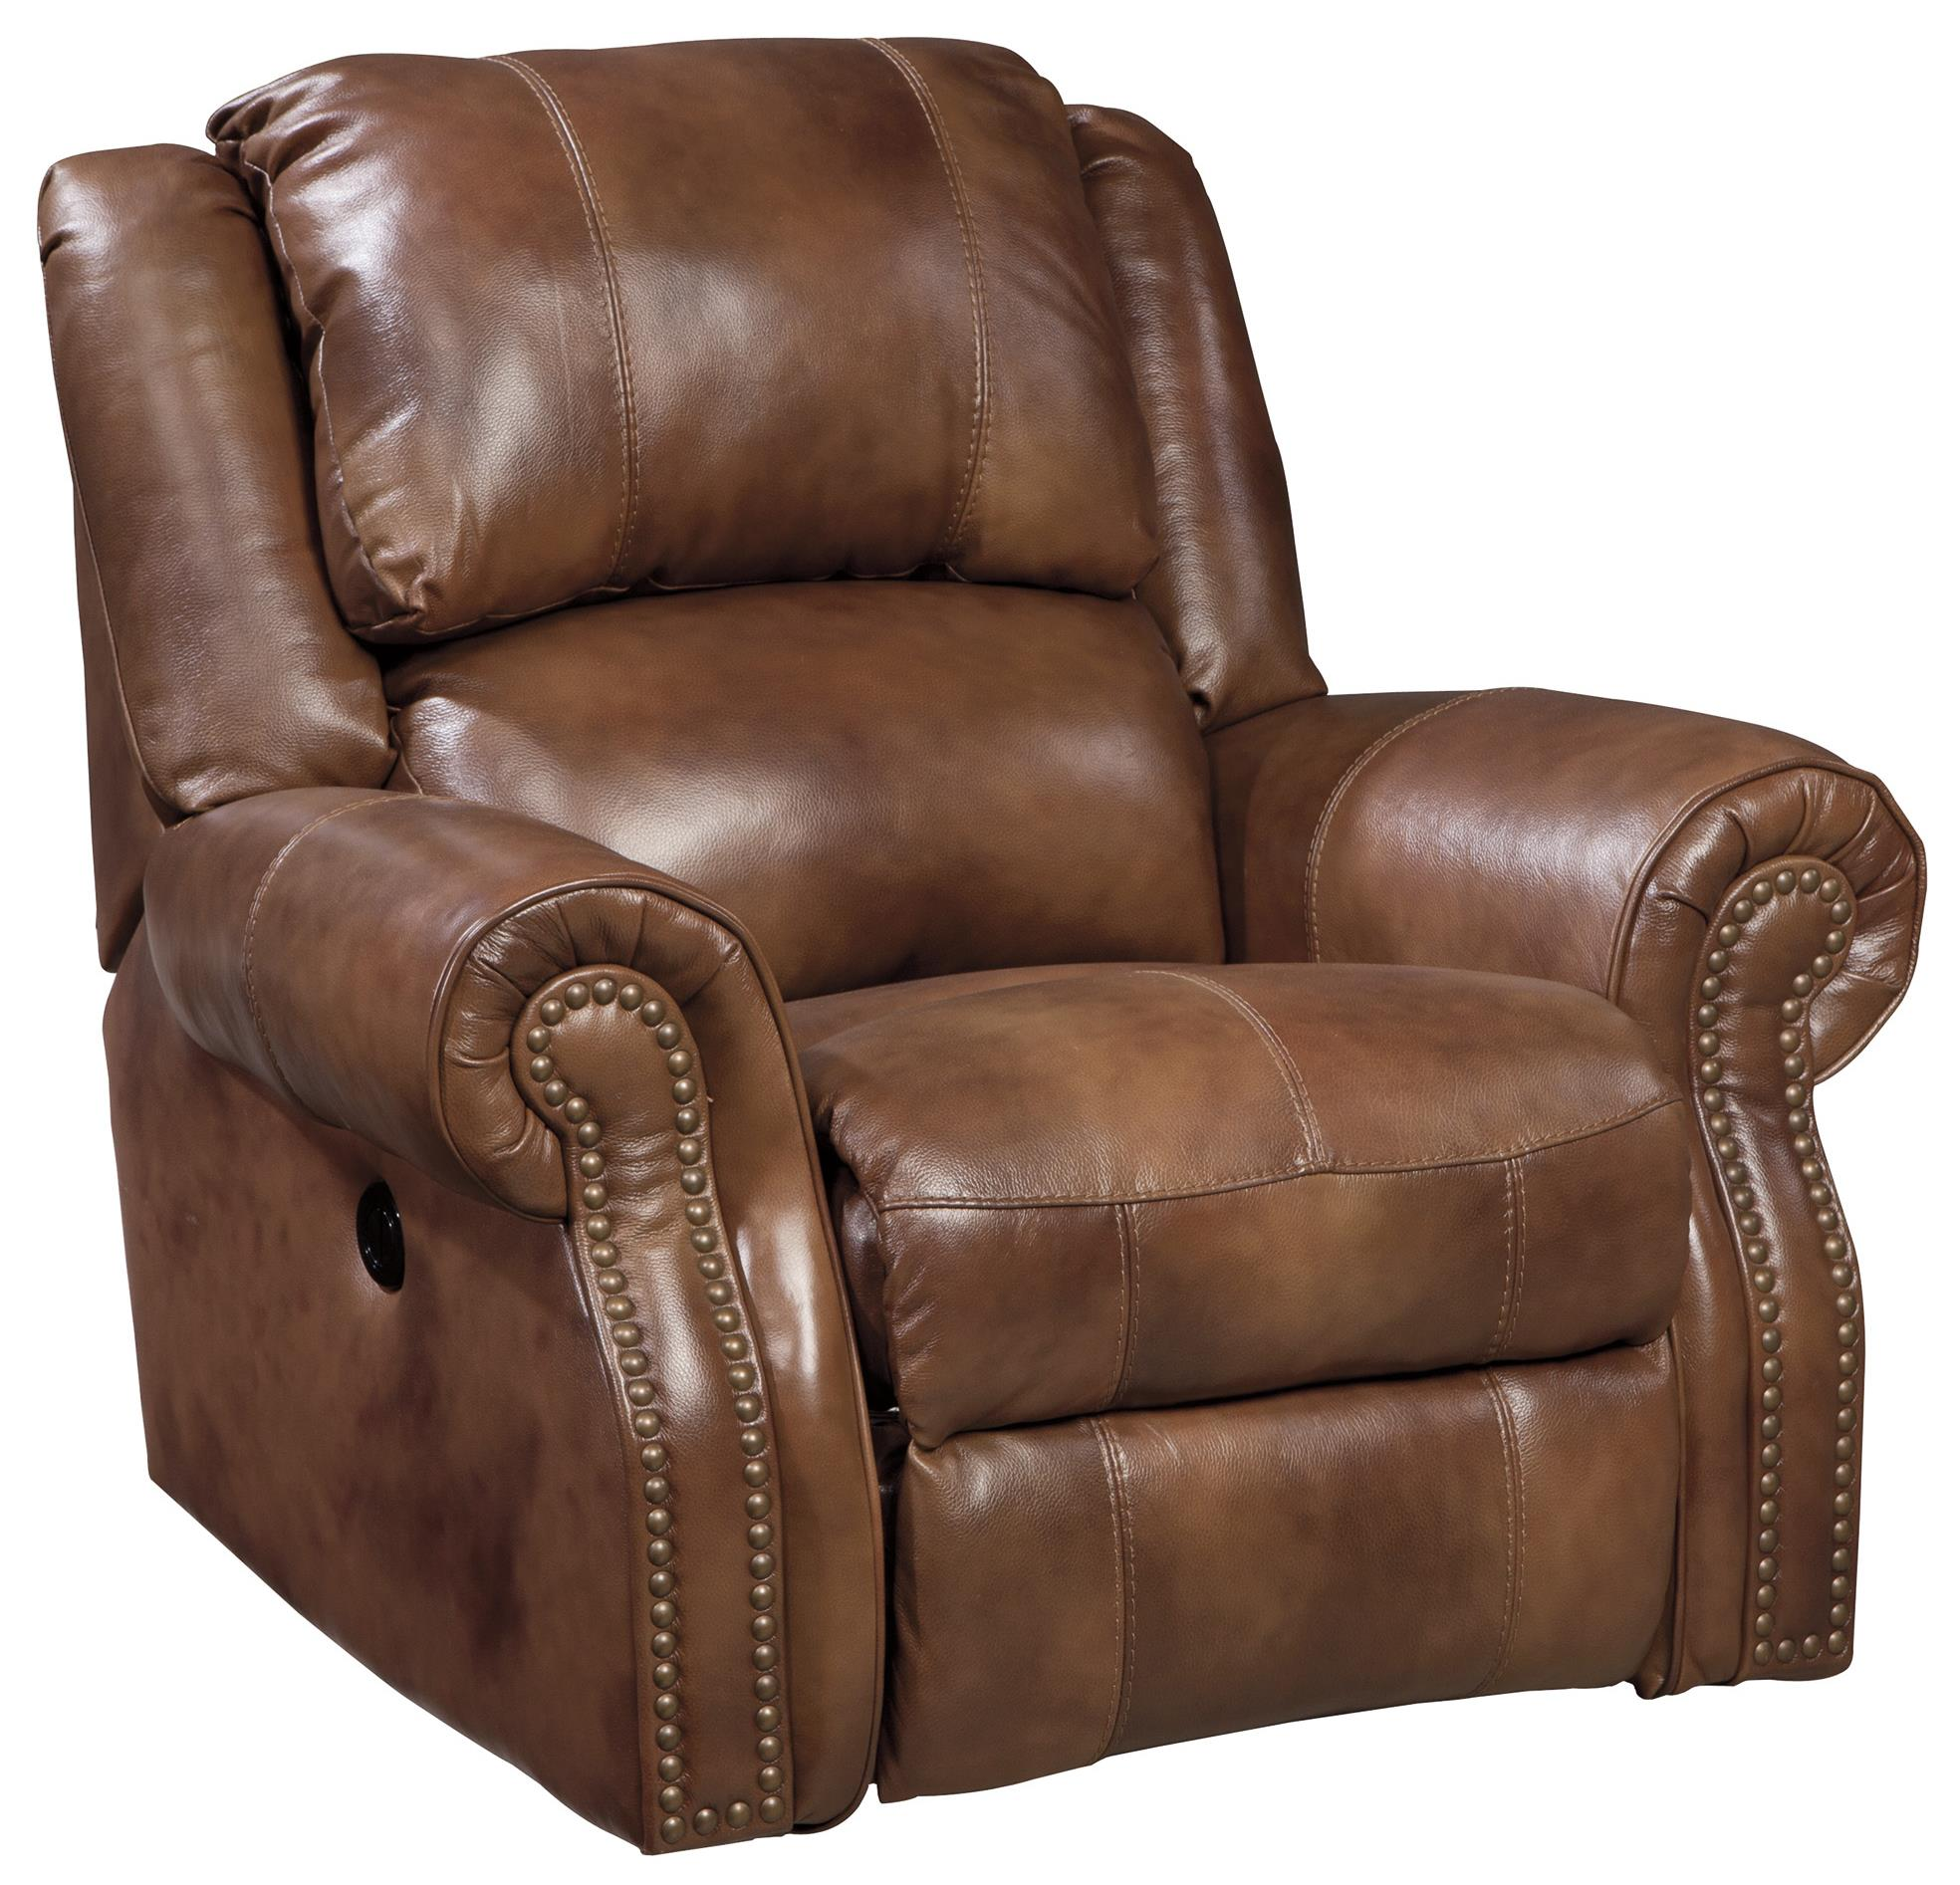 Signature Design by Ashley Walworth Rocker Recliner - Item Number: U7800125